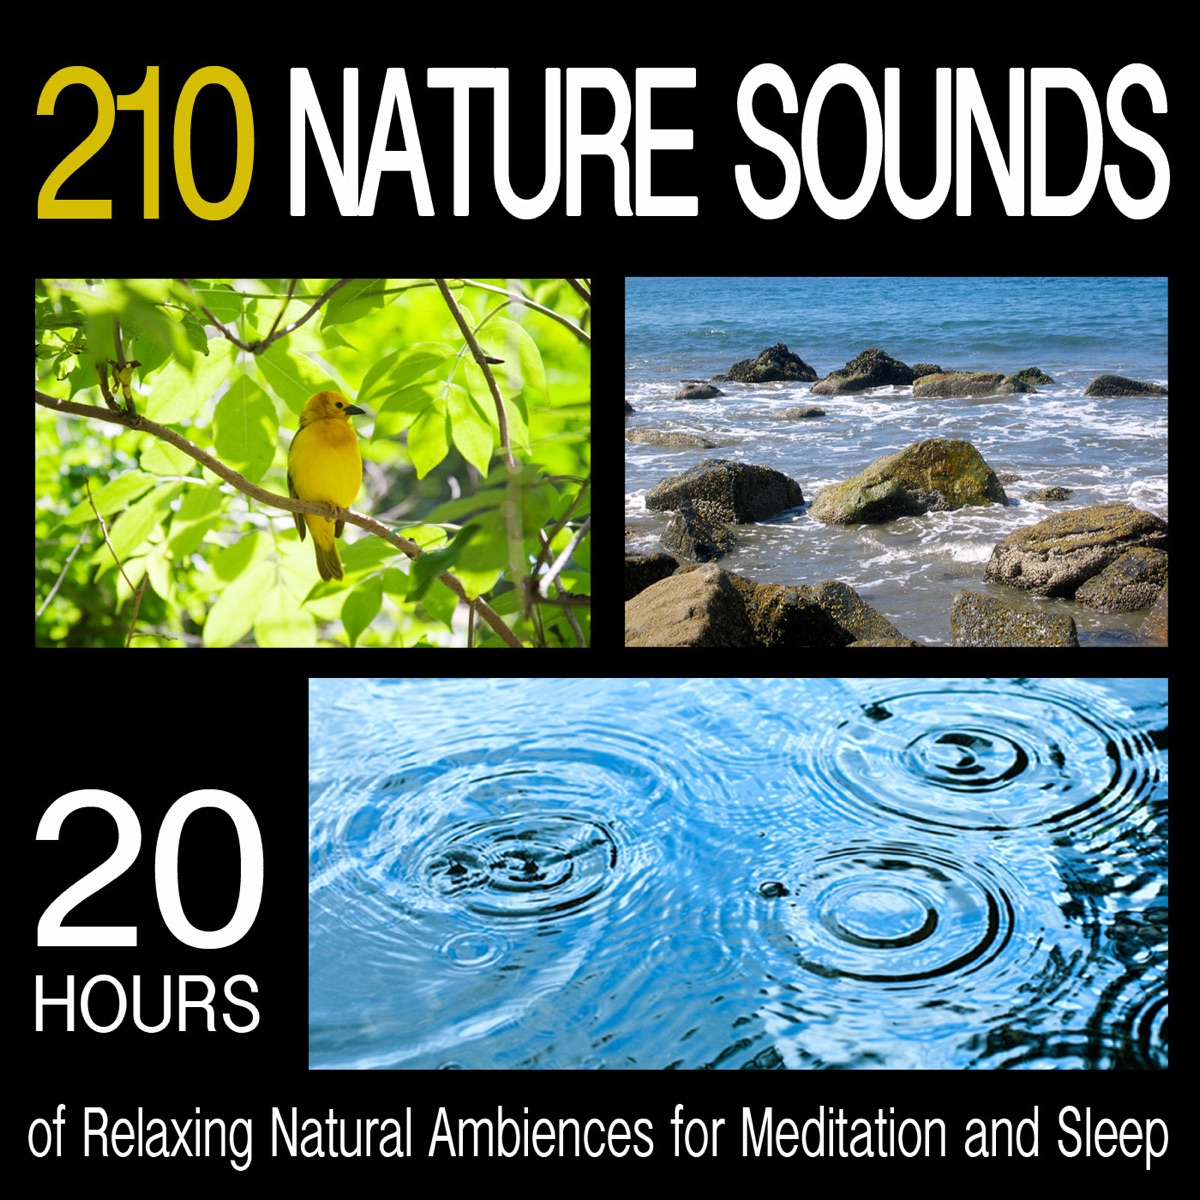 210 nature sounds 20 hours of relaxing natural ambiences for